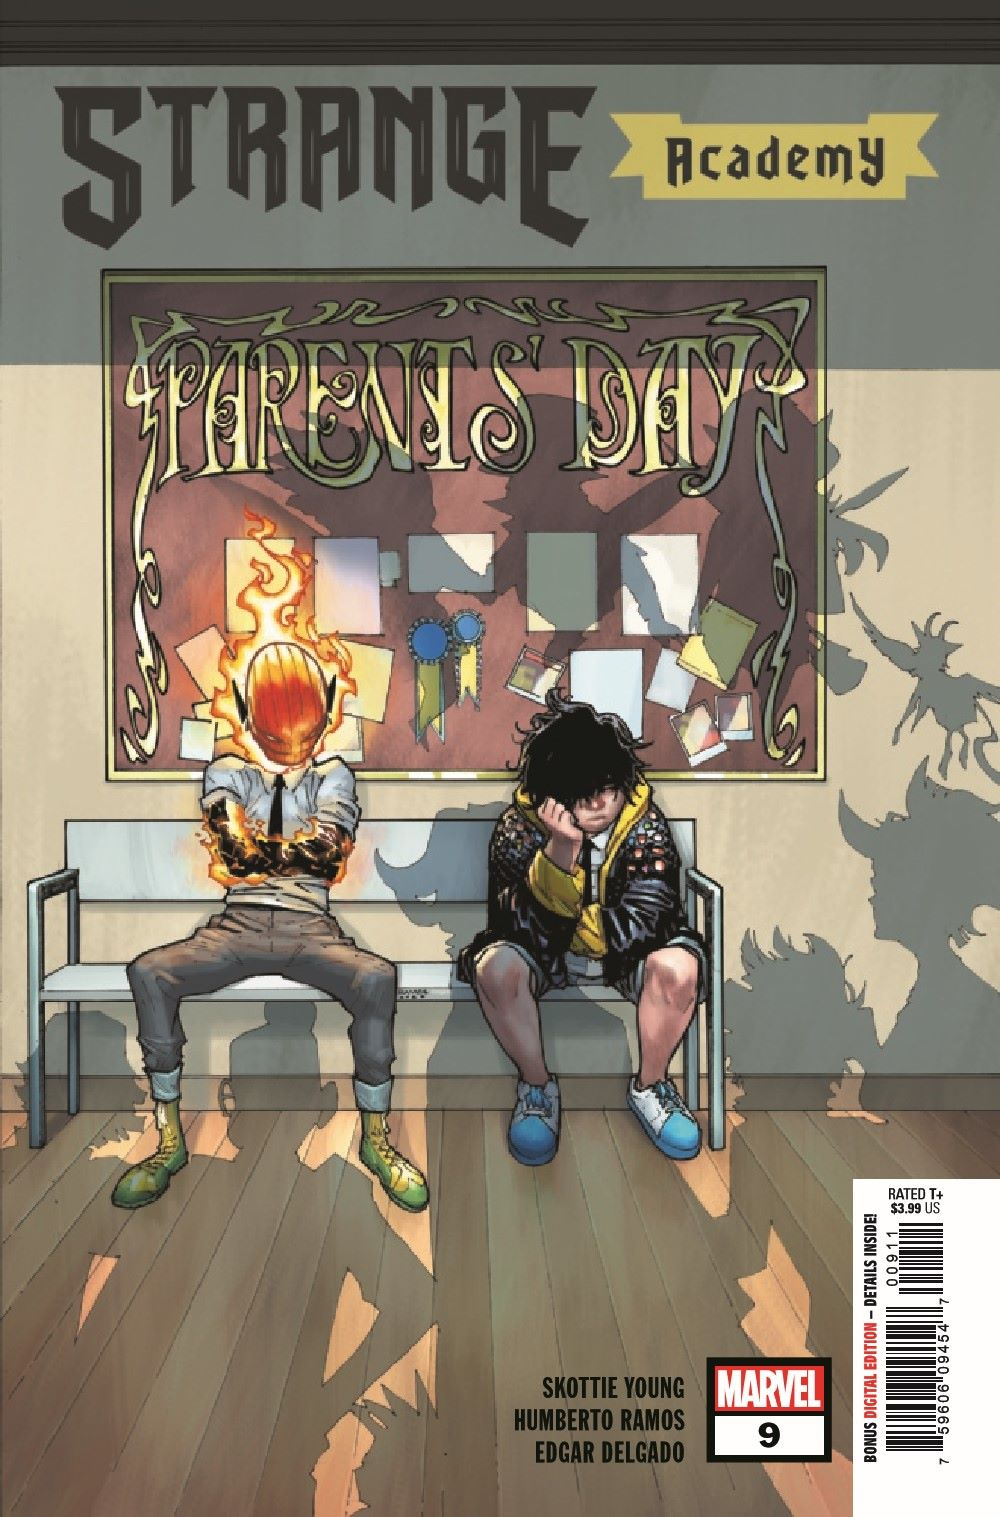 STRACADEMY2020009_Preview-1 ComicList Previews: STRANGE ACADEMY #9